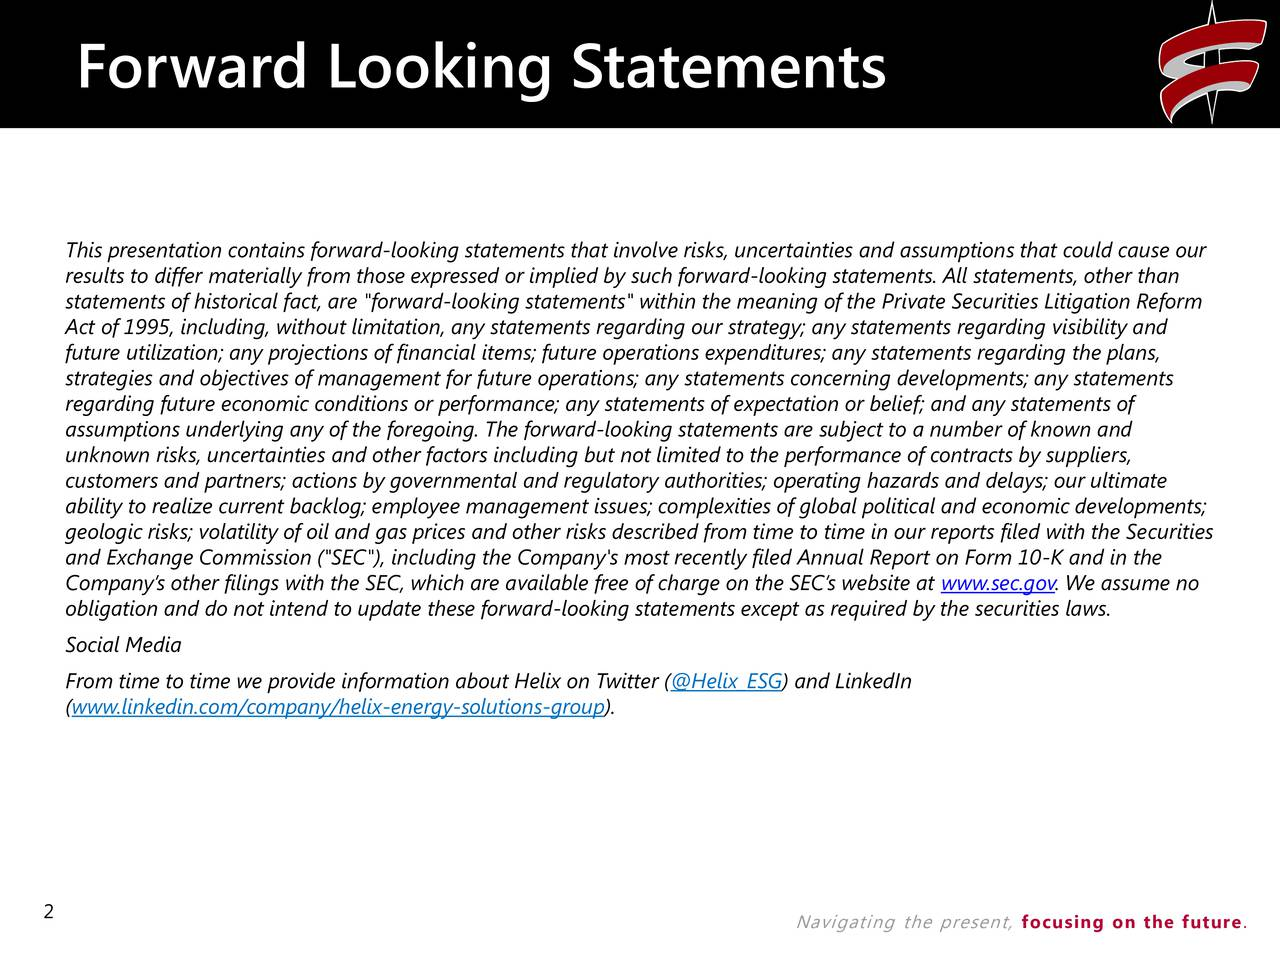 """This presentation contains forward-looking statements that involve risks, uncertainties and assumptions that could cause our results to differ materially from those expressed or implied by such forward-looking statements. All statements, other than statements of historical fact, are """"forward-looking statements"""" within the meaning of the Private Securities Litigation Reform Act of 1995, including, without limitation, any statements regarding our strategy; any statements regarding visibility and future utilization; any projections of financial items; future operations expenditures; any statements regarding the plans, strategies and objectives of management for future operations; any statements concerning developments; any statements regarding future economic conditions or performance; any statements of expectation or belief; and any statements of assumptions underlying any of the foregoing. The forward-looking statements are subject to a number of known and unknown risks, uncertainties and other factors including but not limited to the performance of contracts by suppliers, customers and partners; actions by governmental and regulatory authorities; operating hazards and delays; our ultimate ability to realize current backlog; employee management issues; complexities of global political and economic developments; geologic risks; volatility of oil and gas prices and other risks described from time to time in our reports filed with the Securities and Exchange Commission (""""SEC""""), including the Company's most recently filed Annual Report on Form 10-K and in the Companys other filings with the SEC, which are available free of charge on the SECs website at www.sec.gov. We assume no obligation and do not intend to update these forward-looking statements except as required by the securities laws. Social Media From time to time we provide information about Helix on Twitter (@Helix_ESG) and LinkedIn (www.linkedin.com/company/helix-energy-solutions-group). 2 Navigating the presen"""